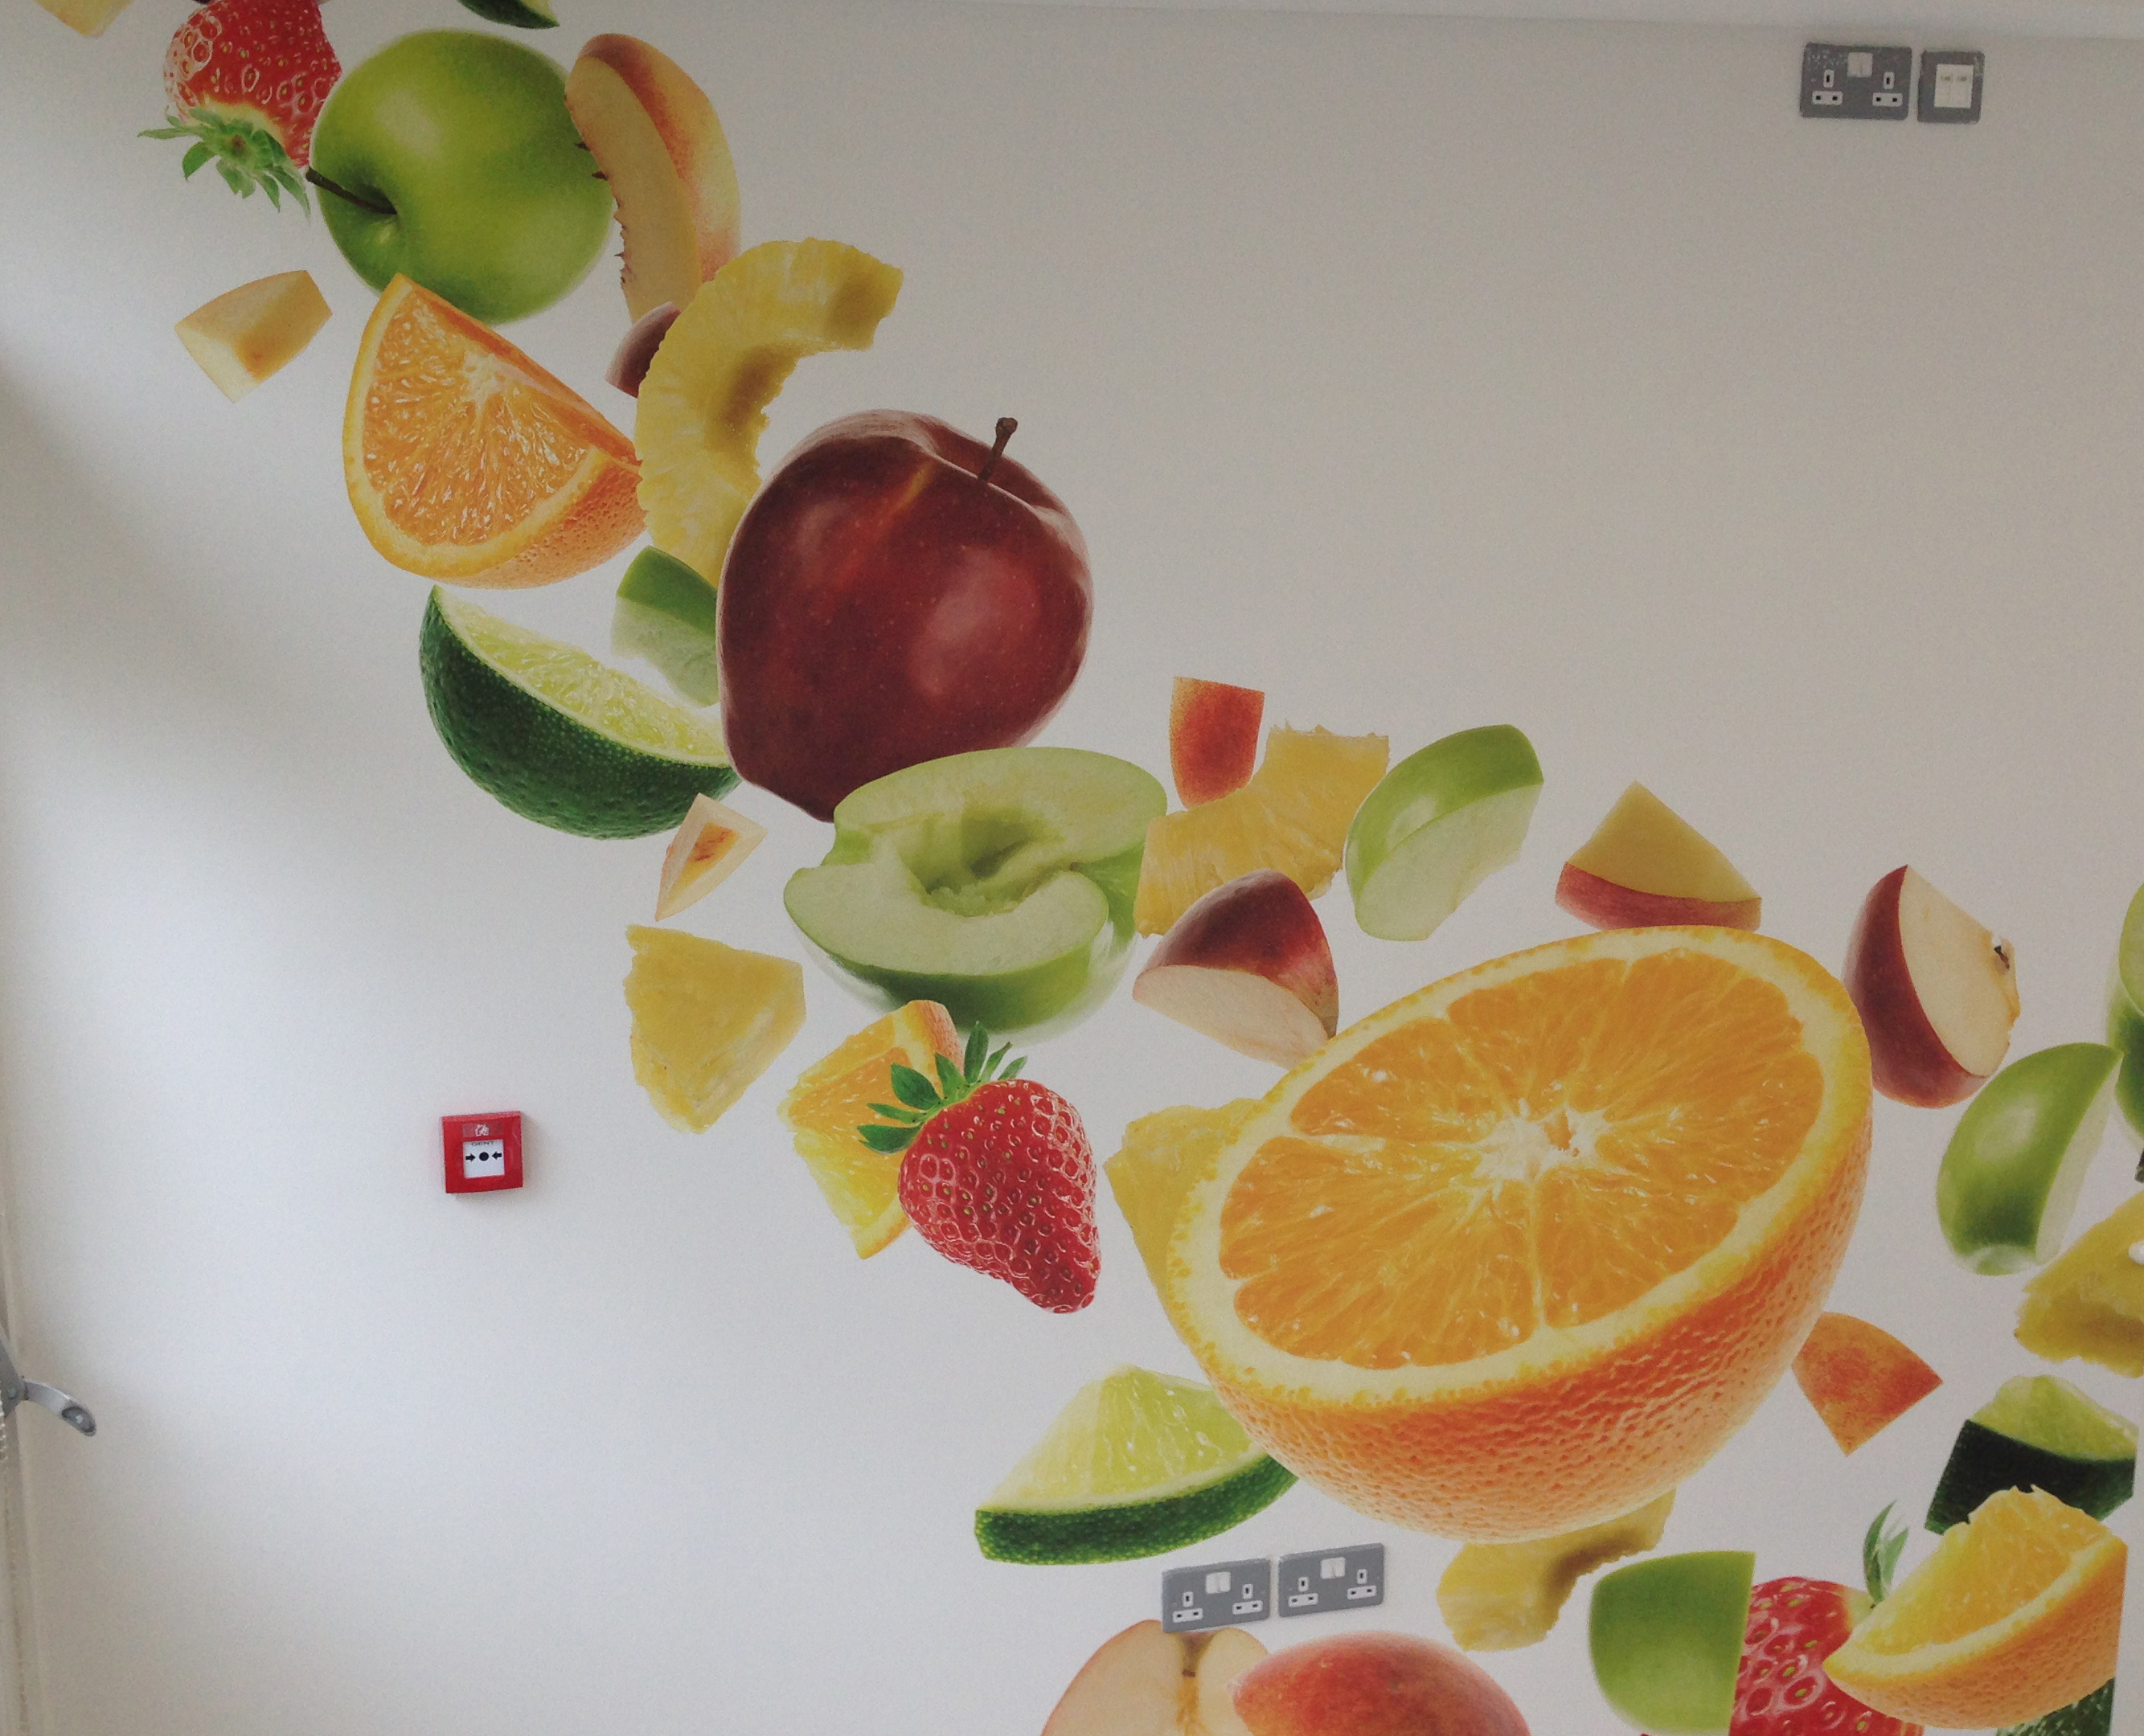 A-fruity-image-more-than-your-five-a-day-pictured-here-This-was-printed-and-installed-a-wallpaper-wp5004185